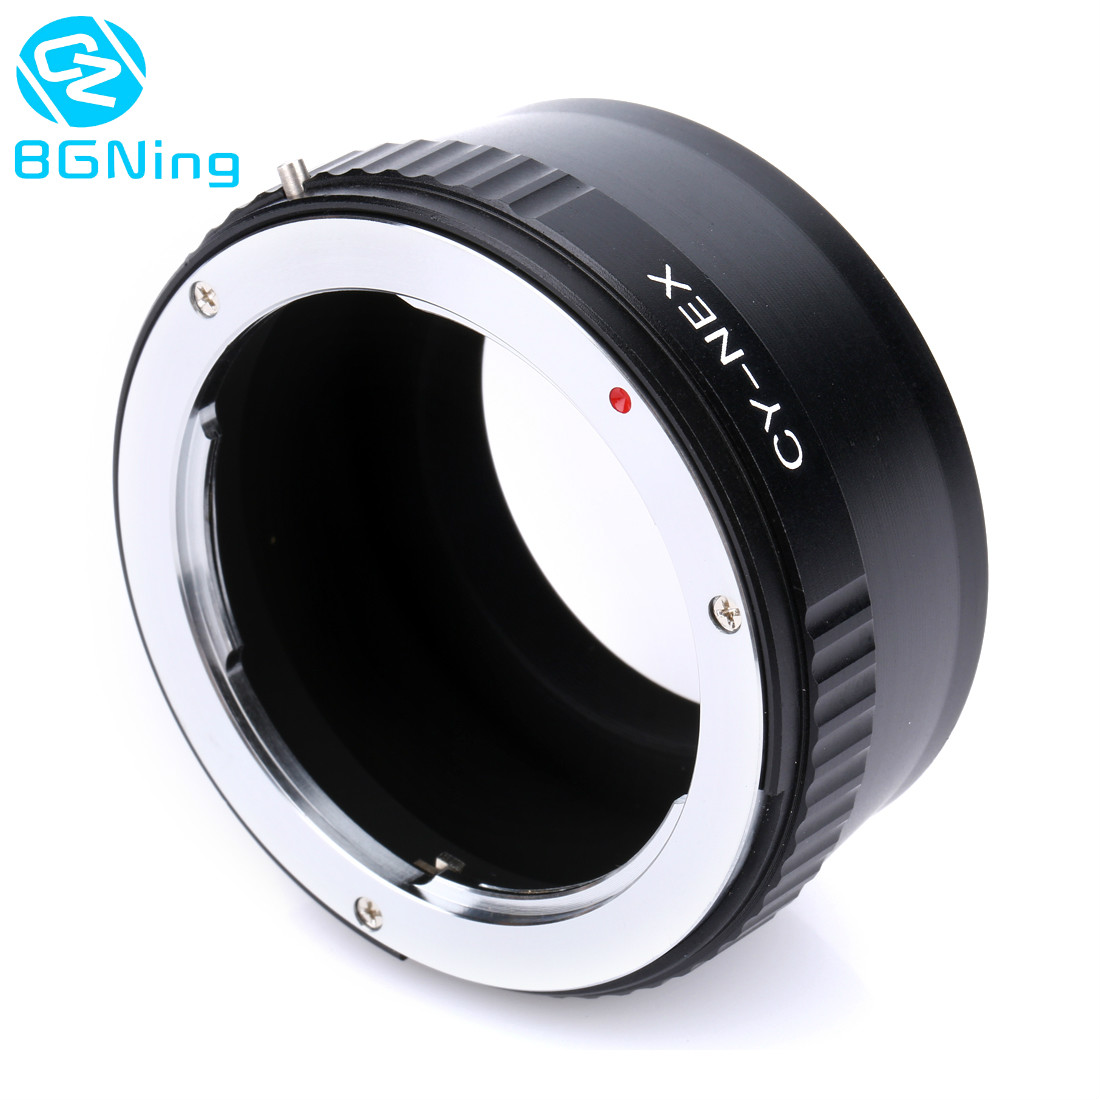 Camera Lens Adapter Ring for Contax Yashica C/Y CY Lens for Sony Alpha NEX E-Mount NEX-3N NEX-6 NEX-5R C Y to E Mount PartsCamera Lens Adapter Ring for Contax Yashica C/Y CY Lens for Sony Alpha NEX E-Mount NEX-3N NEX-6 NEX-5R C Y to E Mount Parts